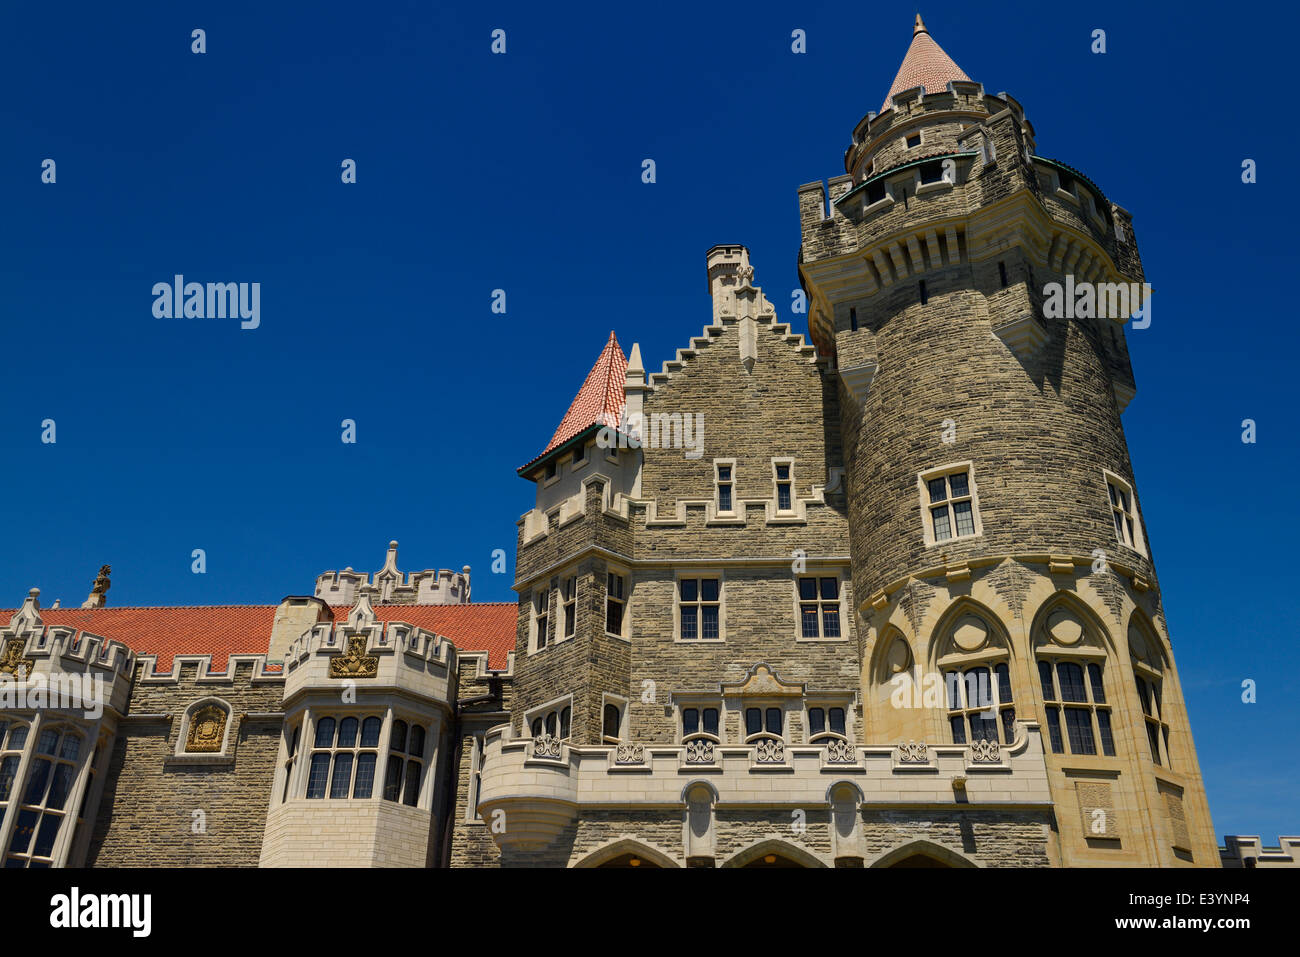 Detail Of Tower Gothic Revival Casa Loma Castle Museum Lankmark In Toronto With Blue Sky